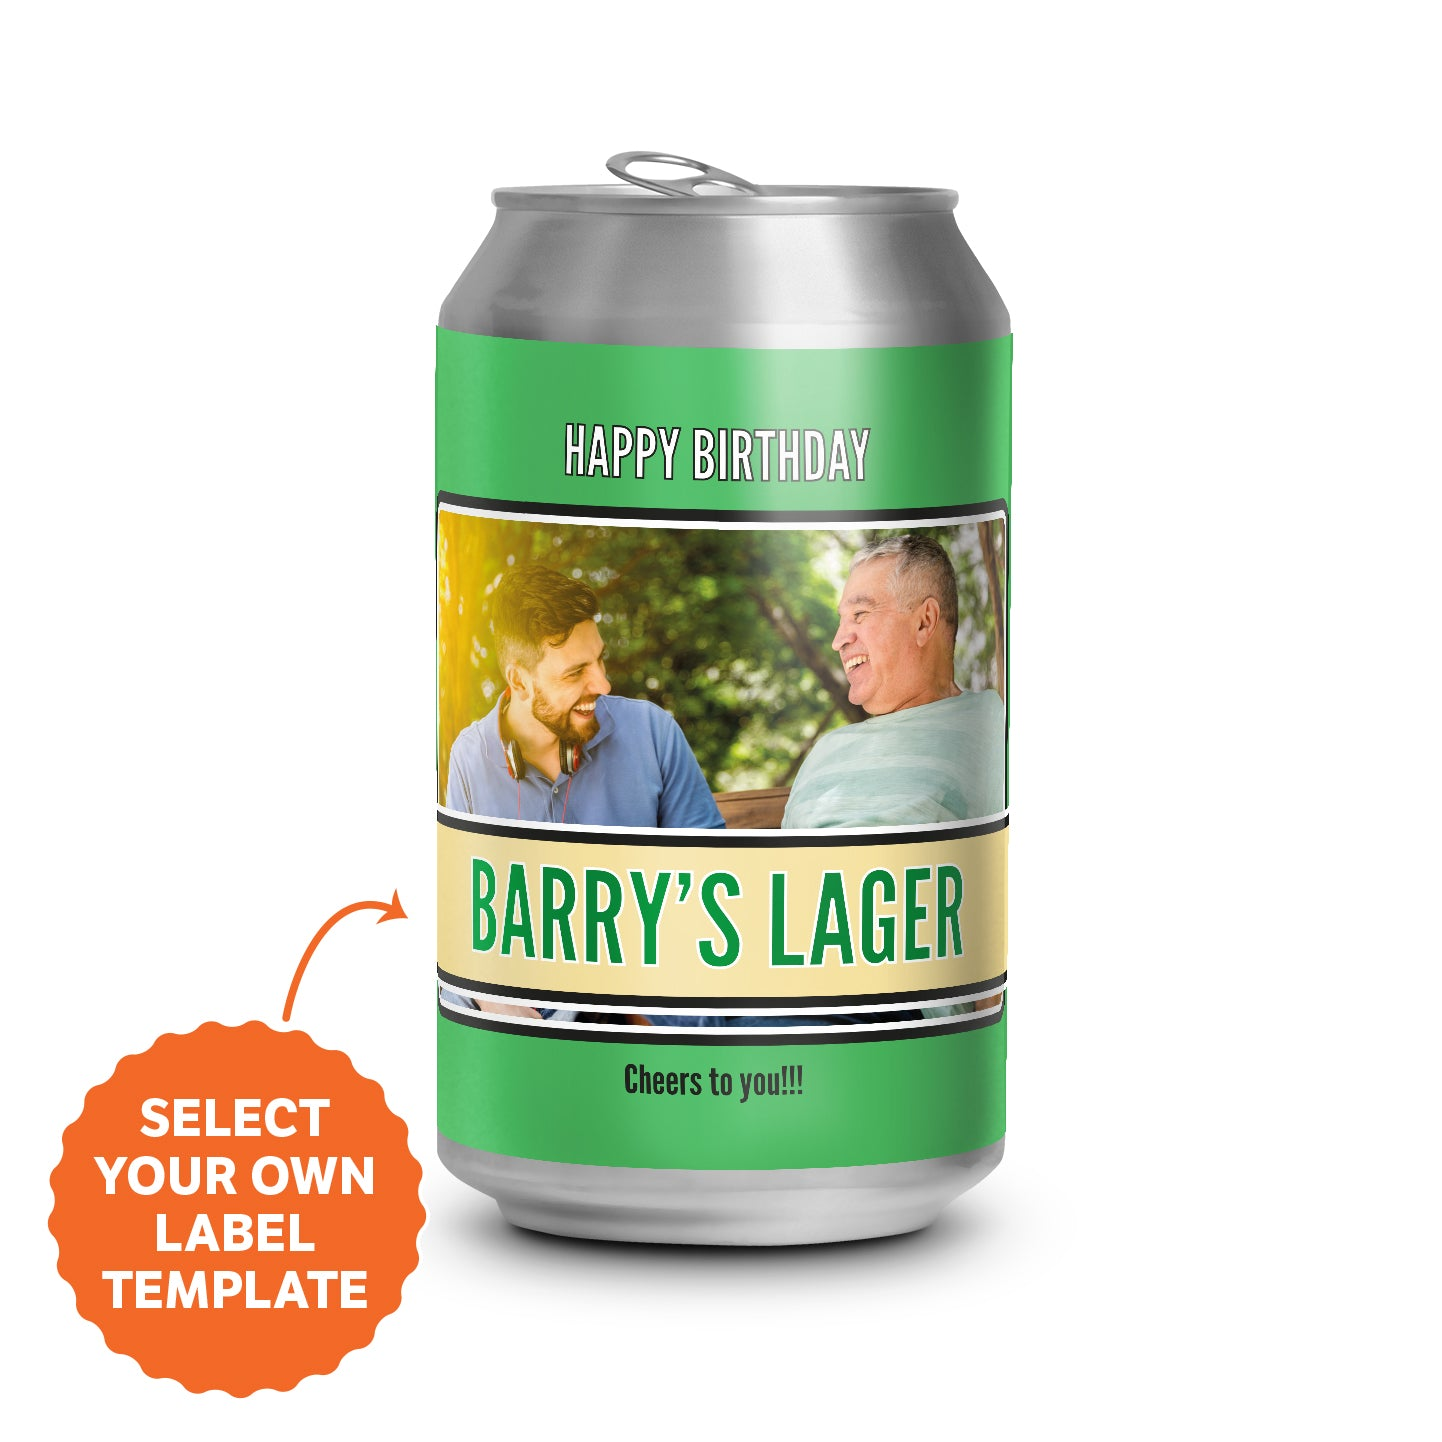 Lager Cans 4.3% - 375ml - 6 Pack